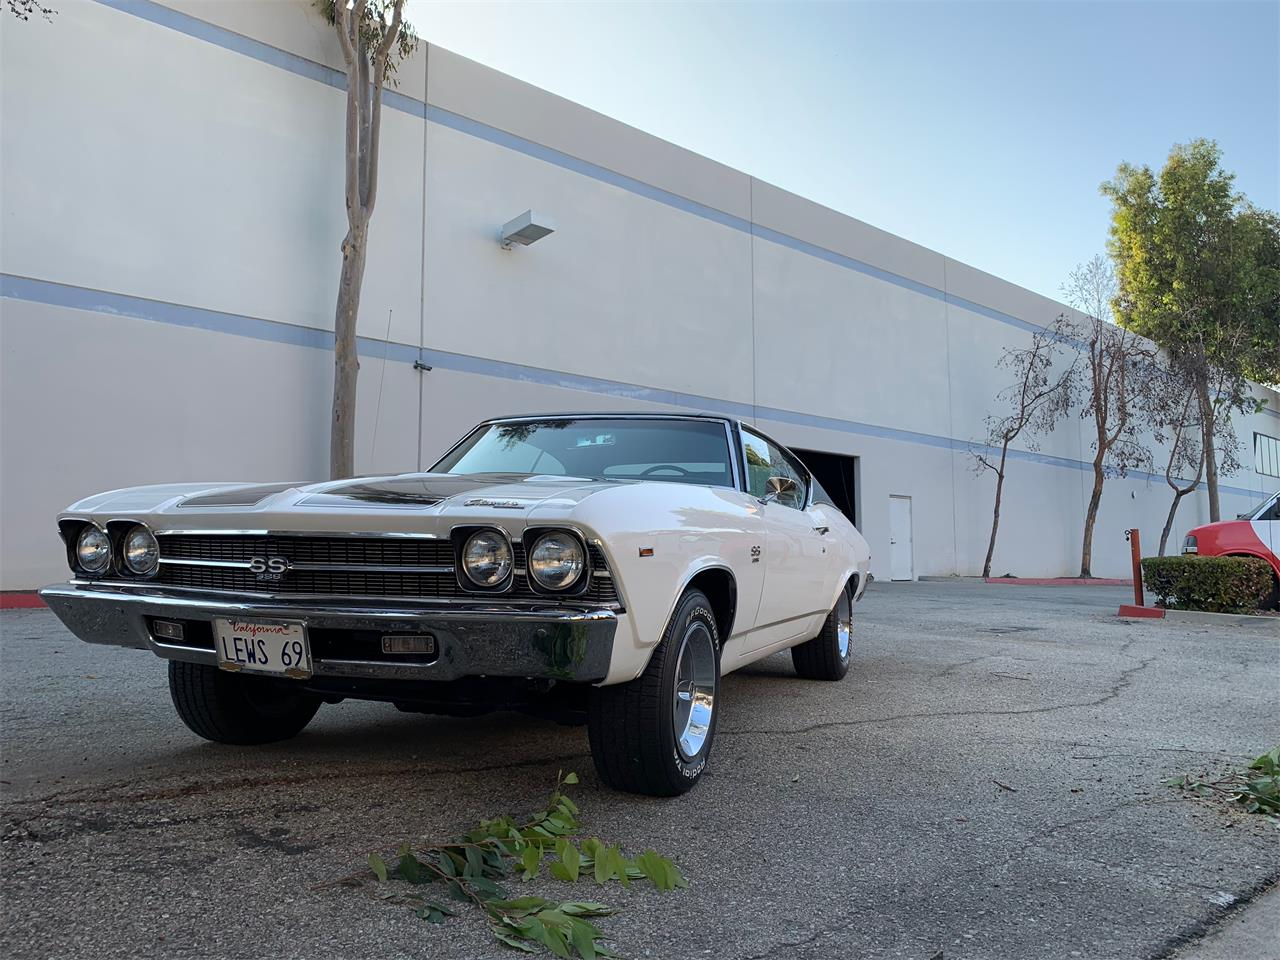 1969 Chevrolet Chevelle SS for sale in Irvine, CA – photo 2